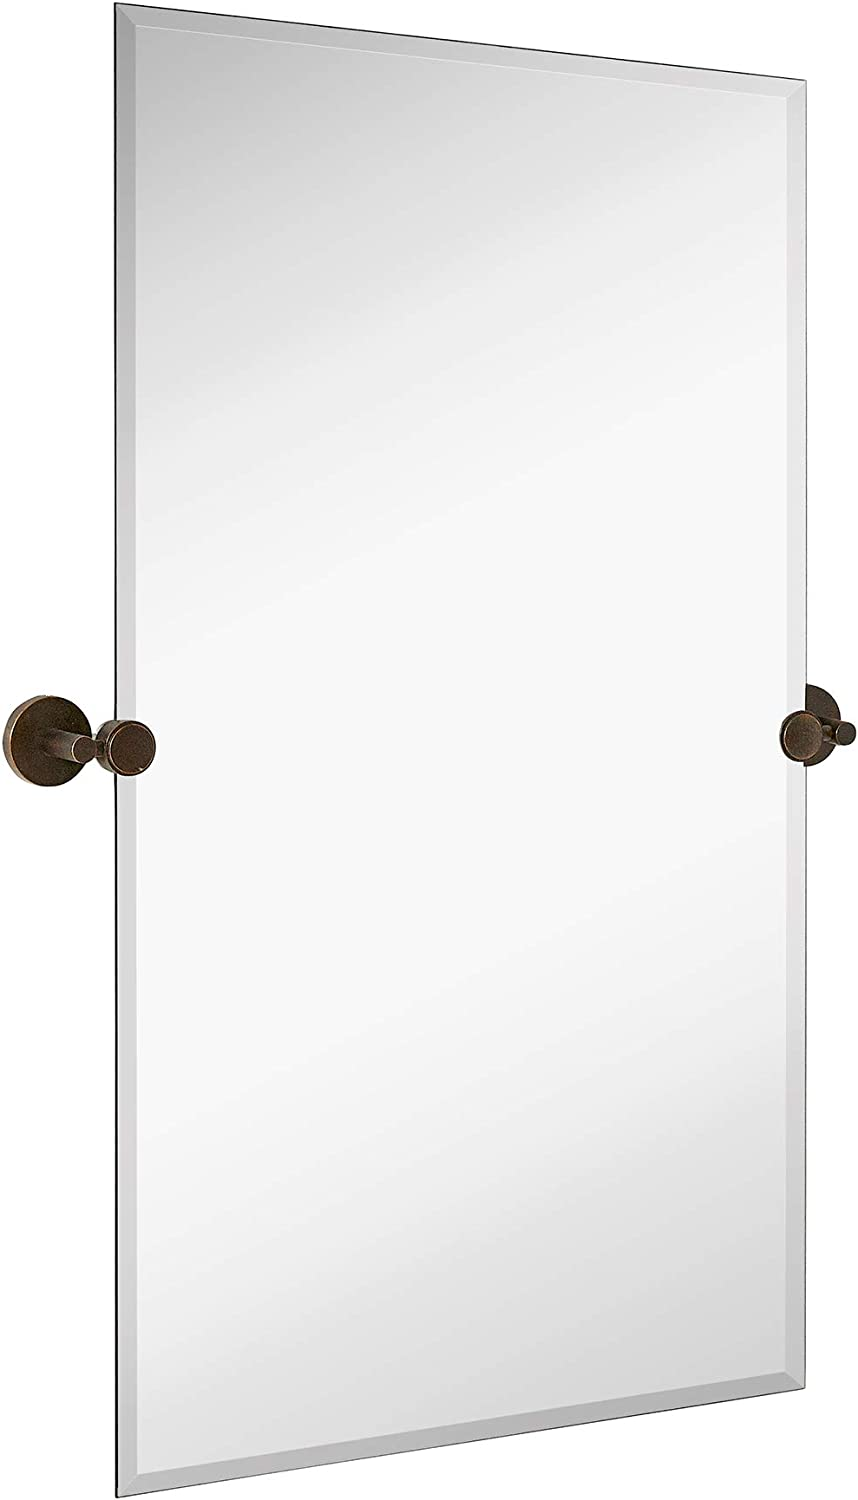 Hamilton Hills Large Pivot Rectangle Mirror with Oil Rubbed Bronze Wall Anchors   Silver Backed Adjustable Moving & Tilting Wall Mirror   24